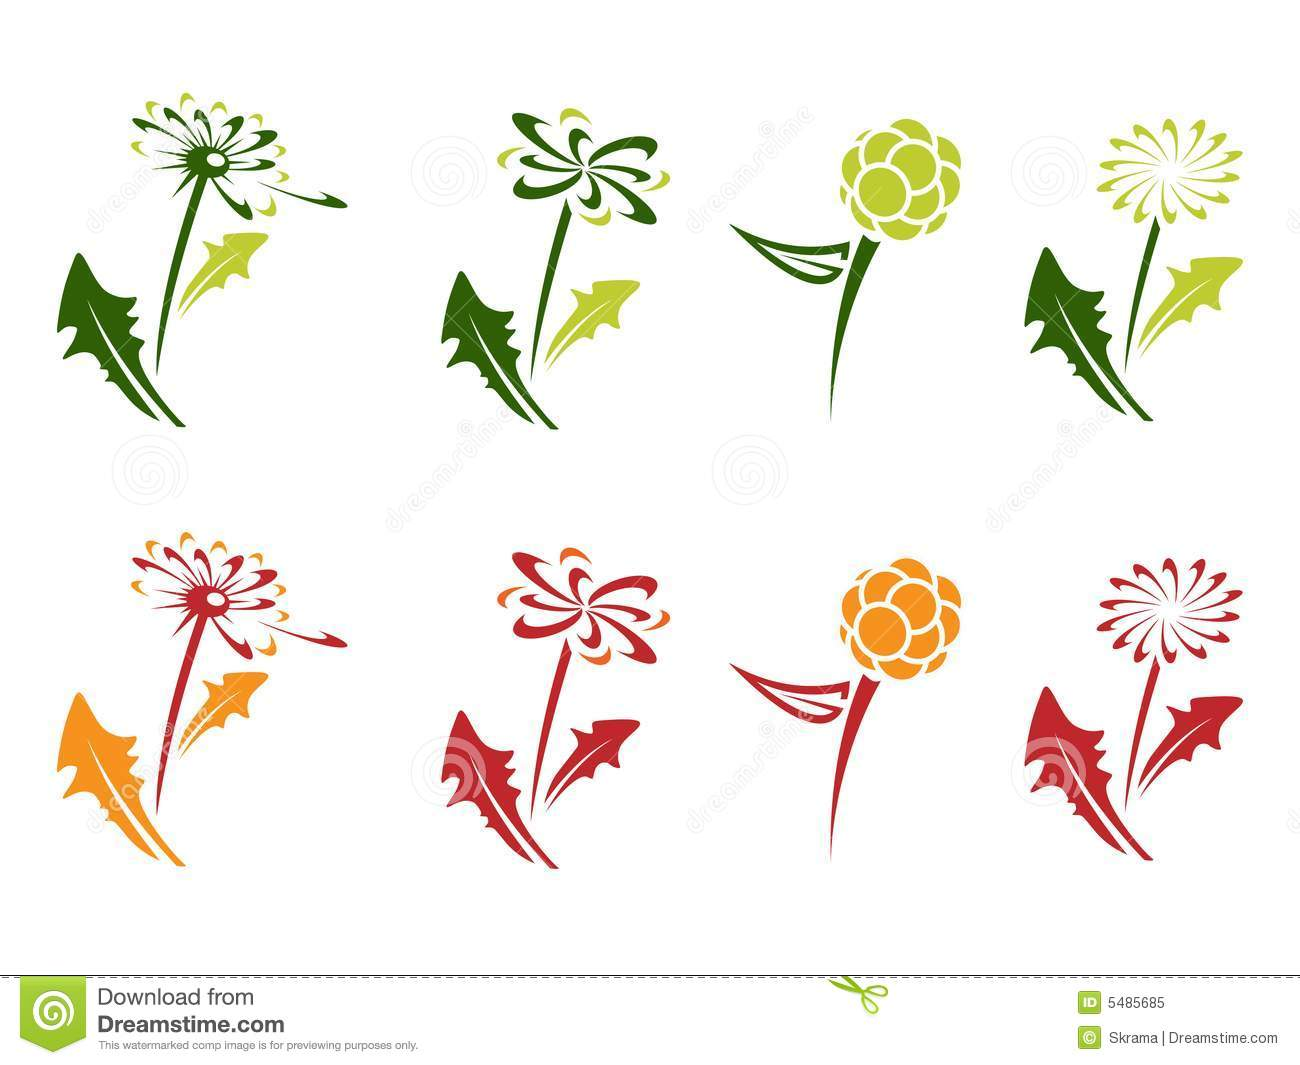 Dandelion symbol for logotype with leafs.